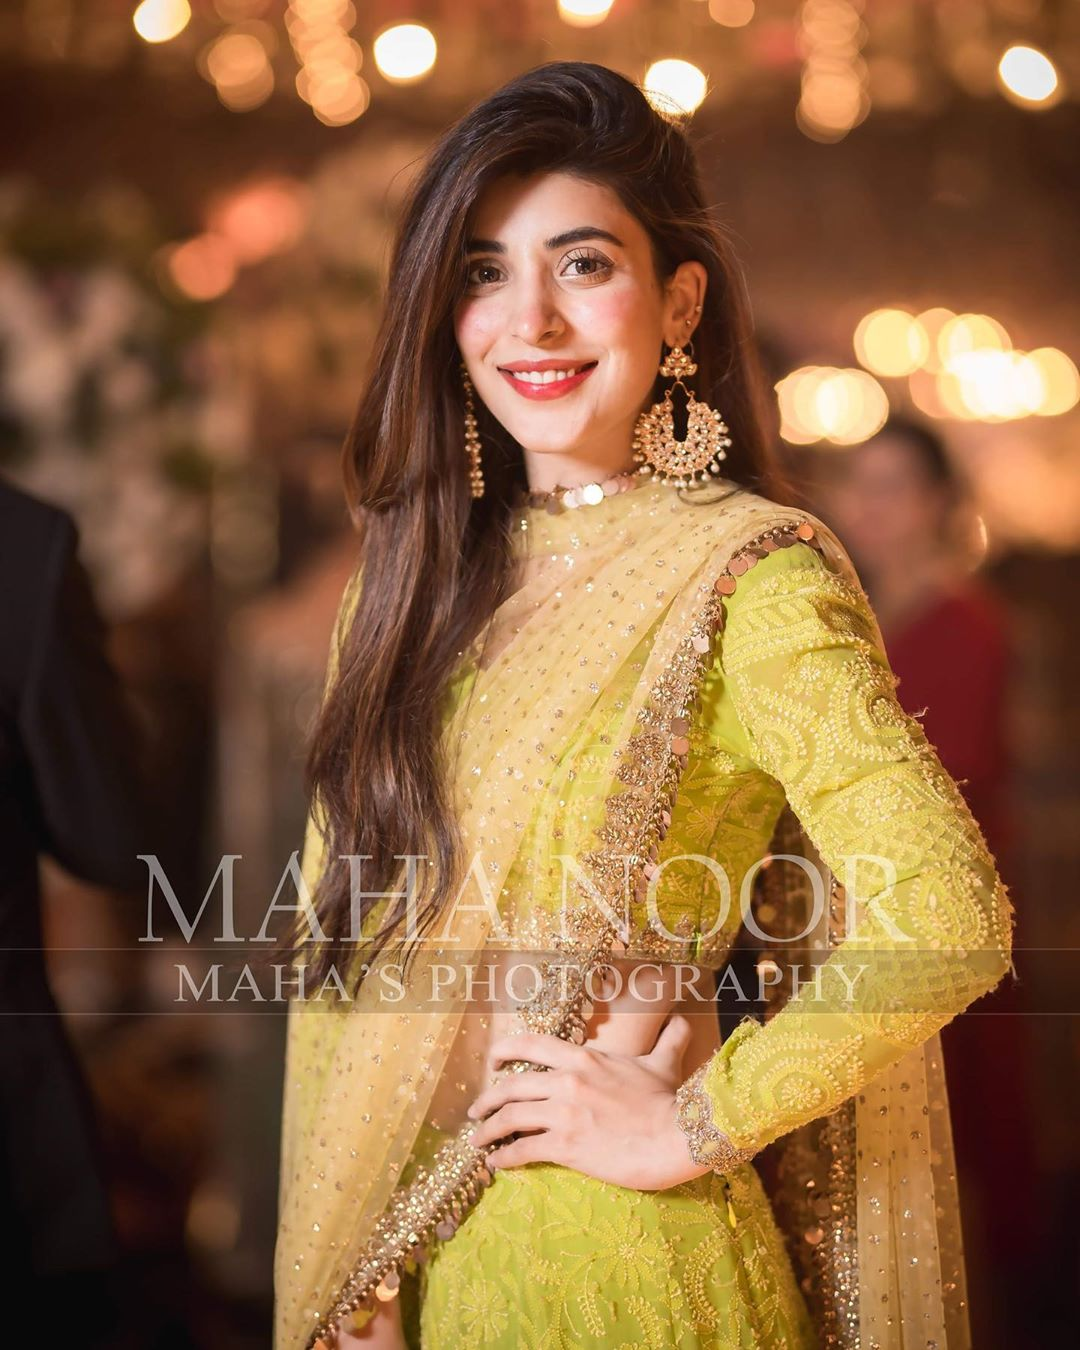 In Pictures: Celebrities grace wedding function at Bani Gala